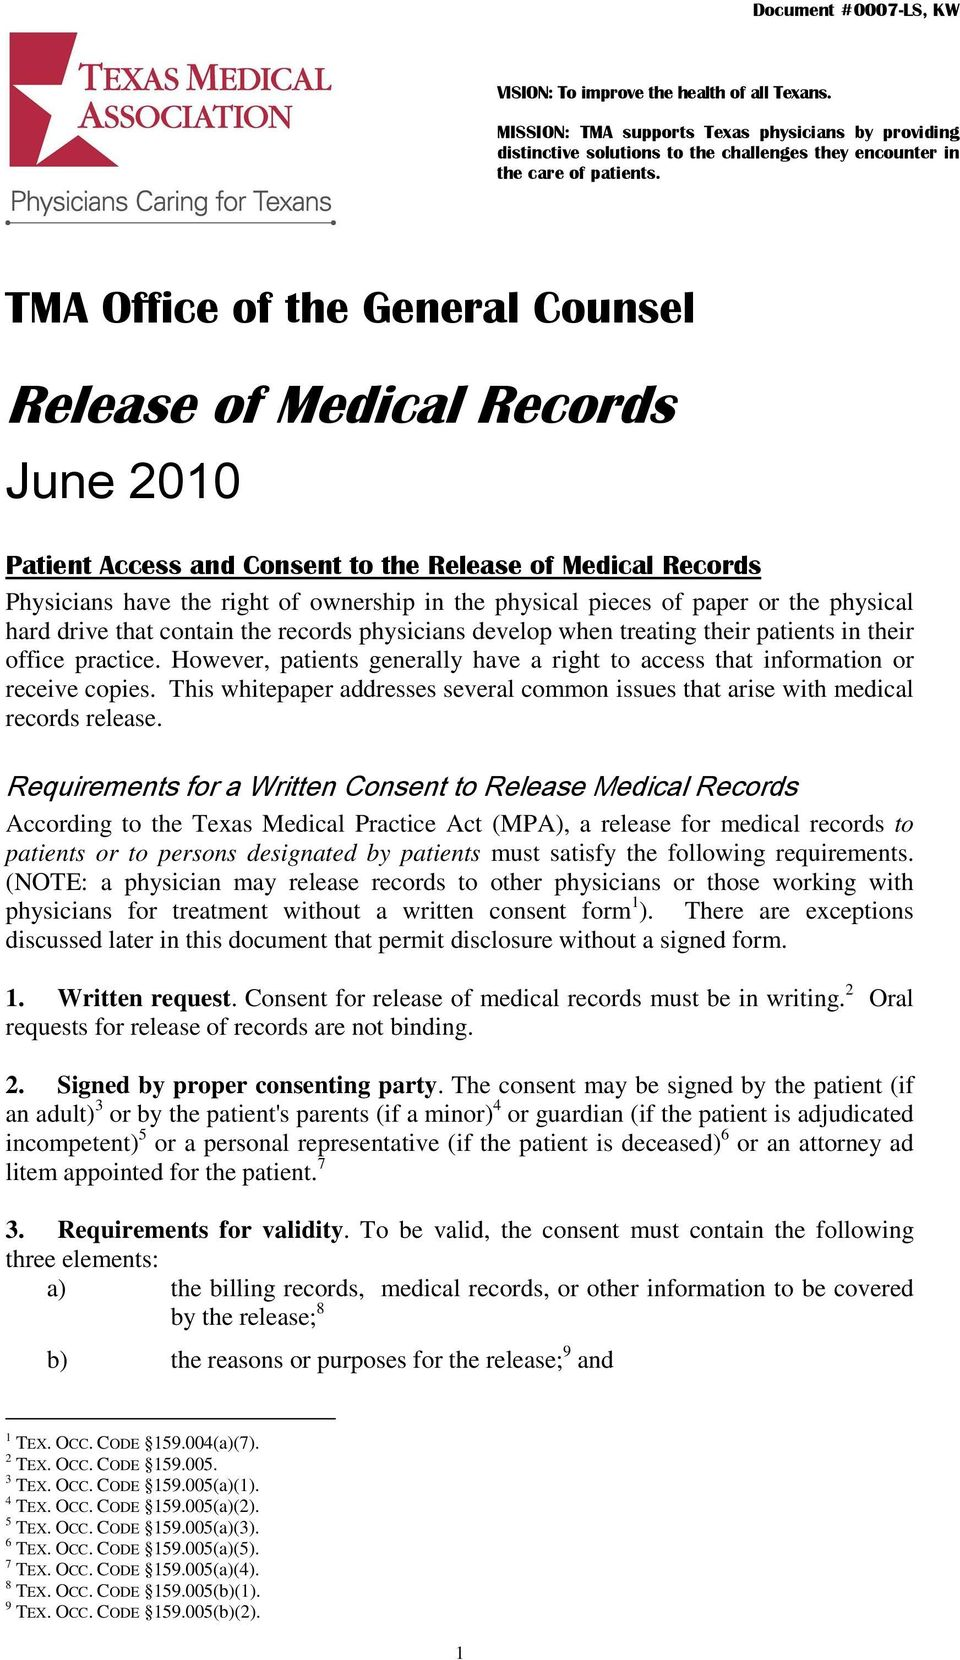 release of medical records pdf